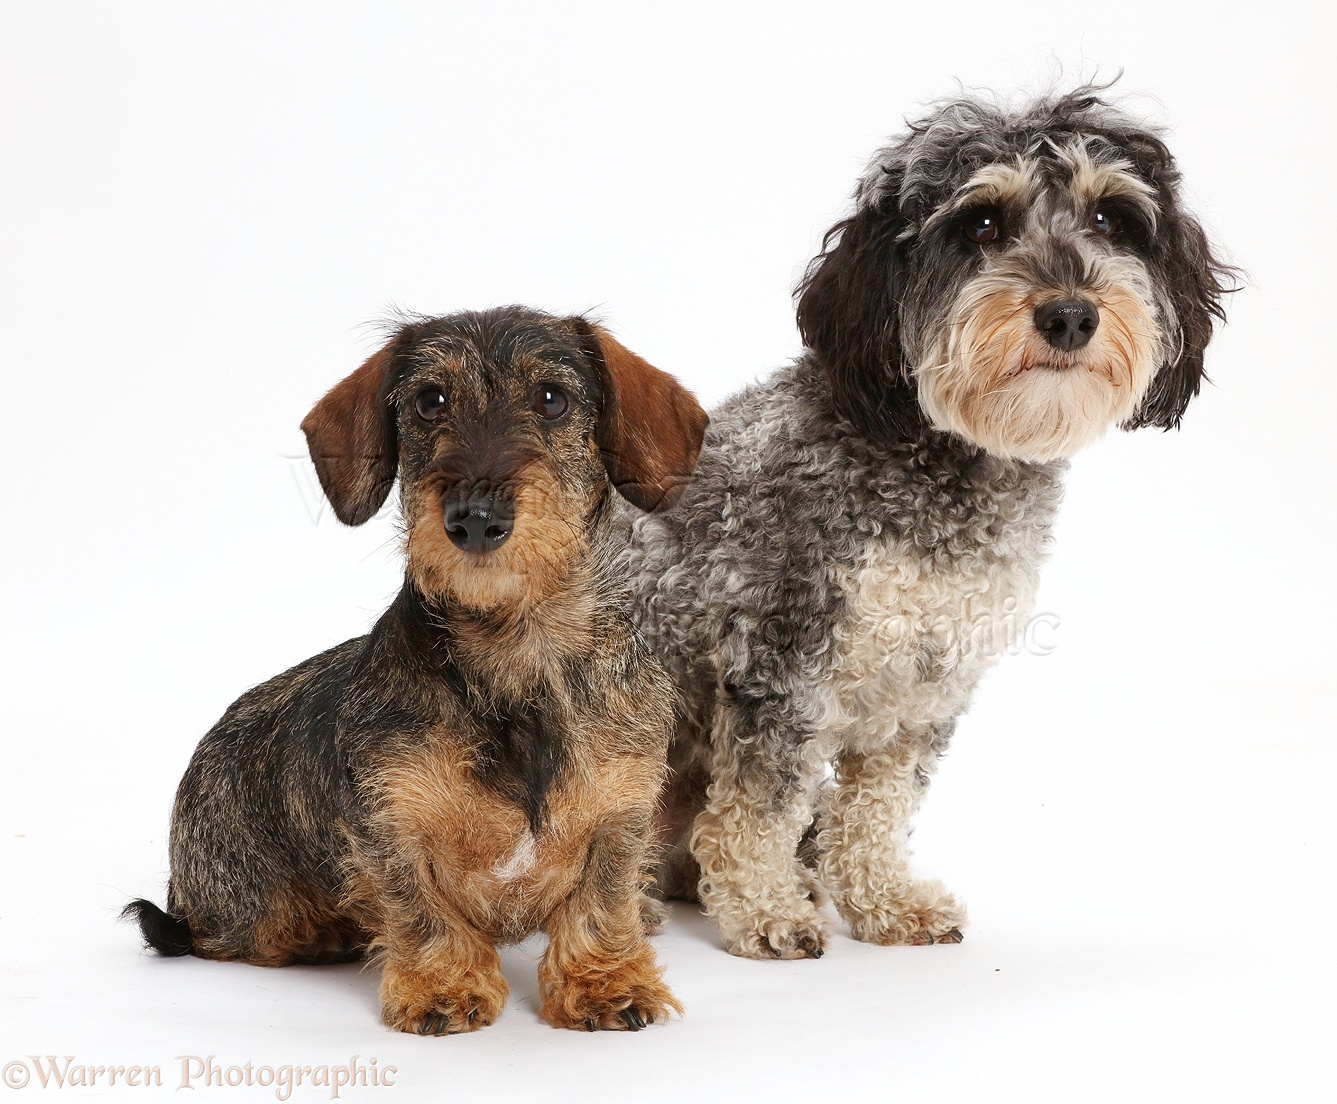 Daxie-doodle dog and wire-haired Dachshund photo WP43327